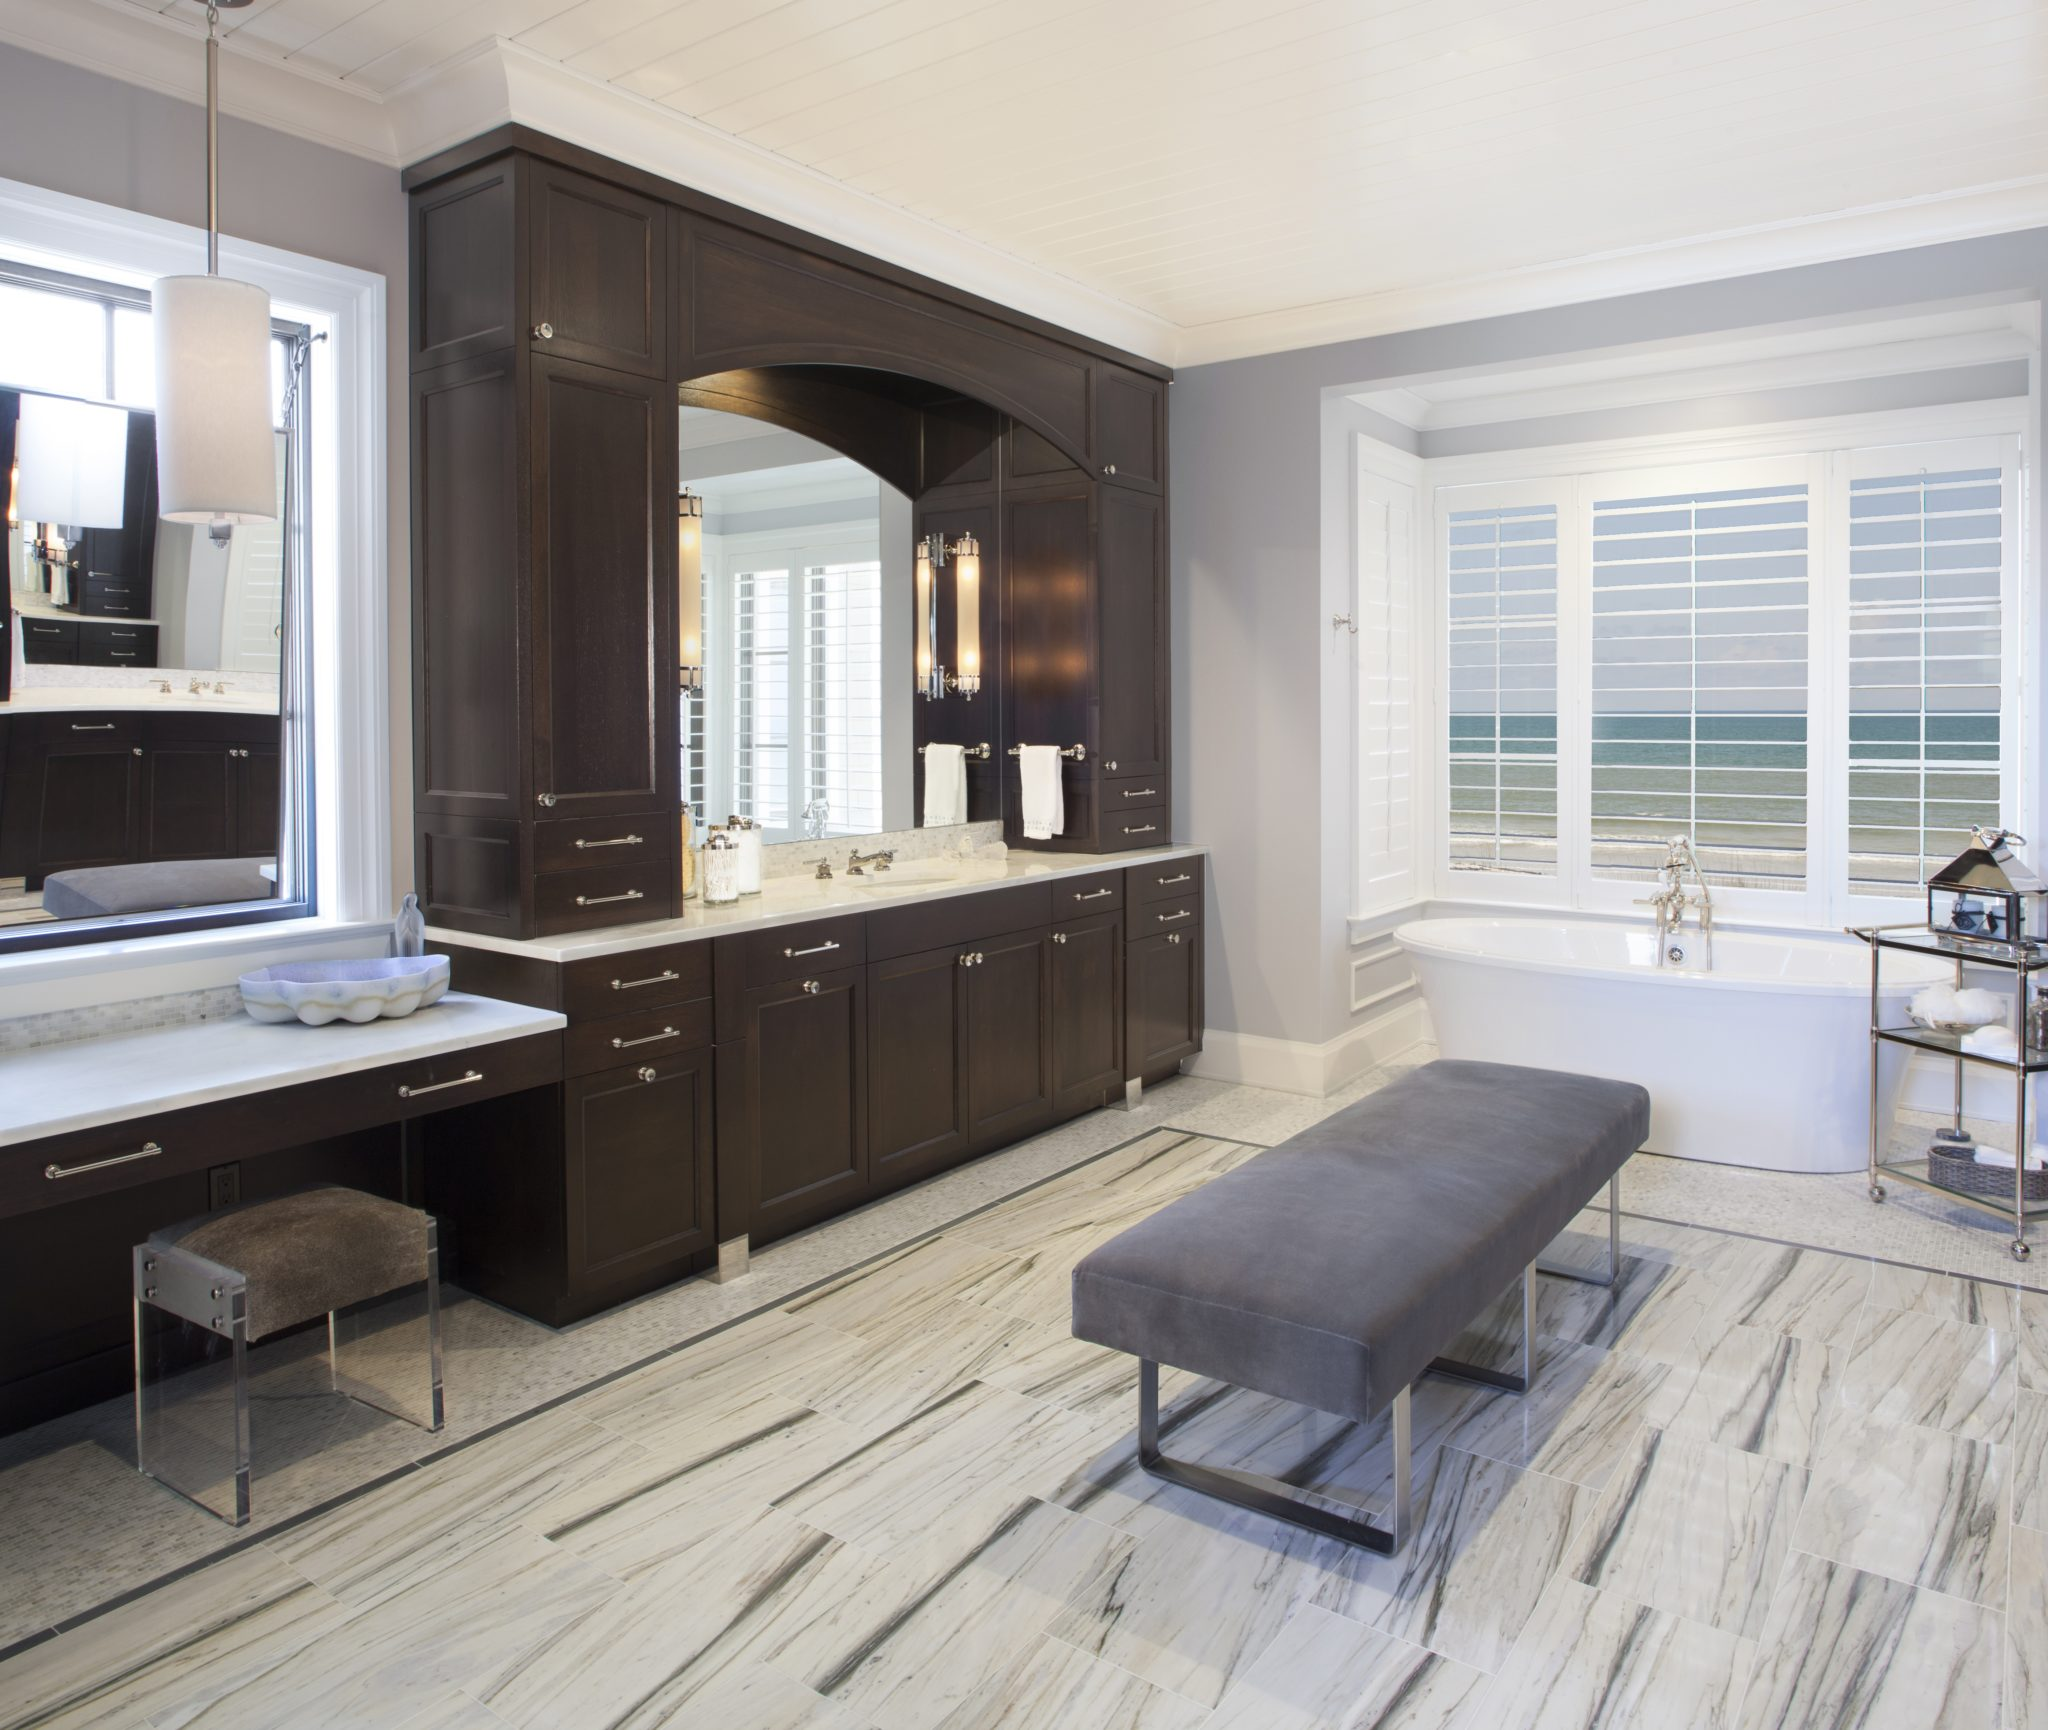 Transitional coastal master bathroom by Amanda Webster Design, Inc.